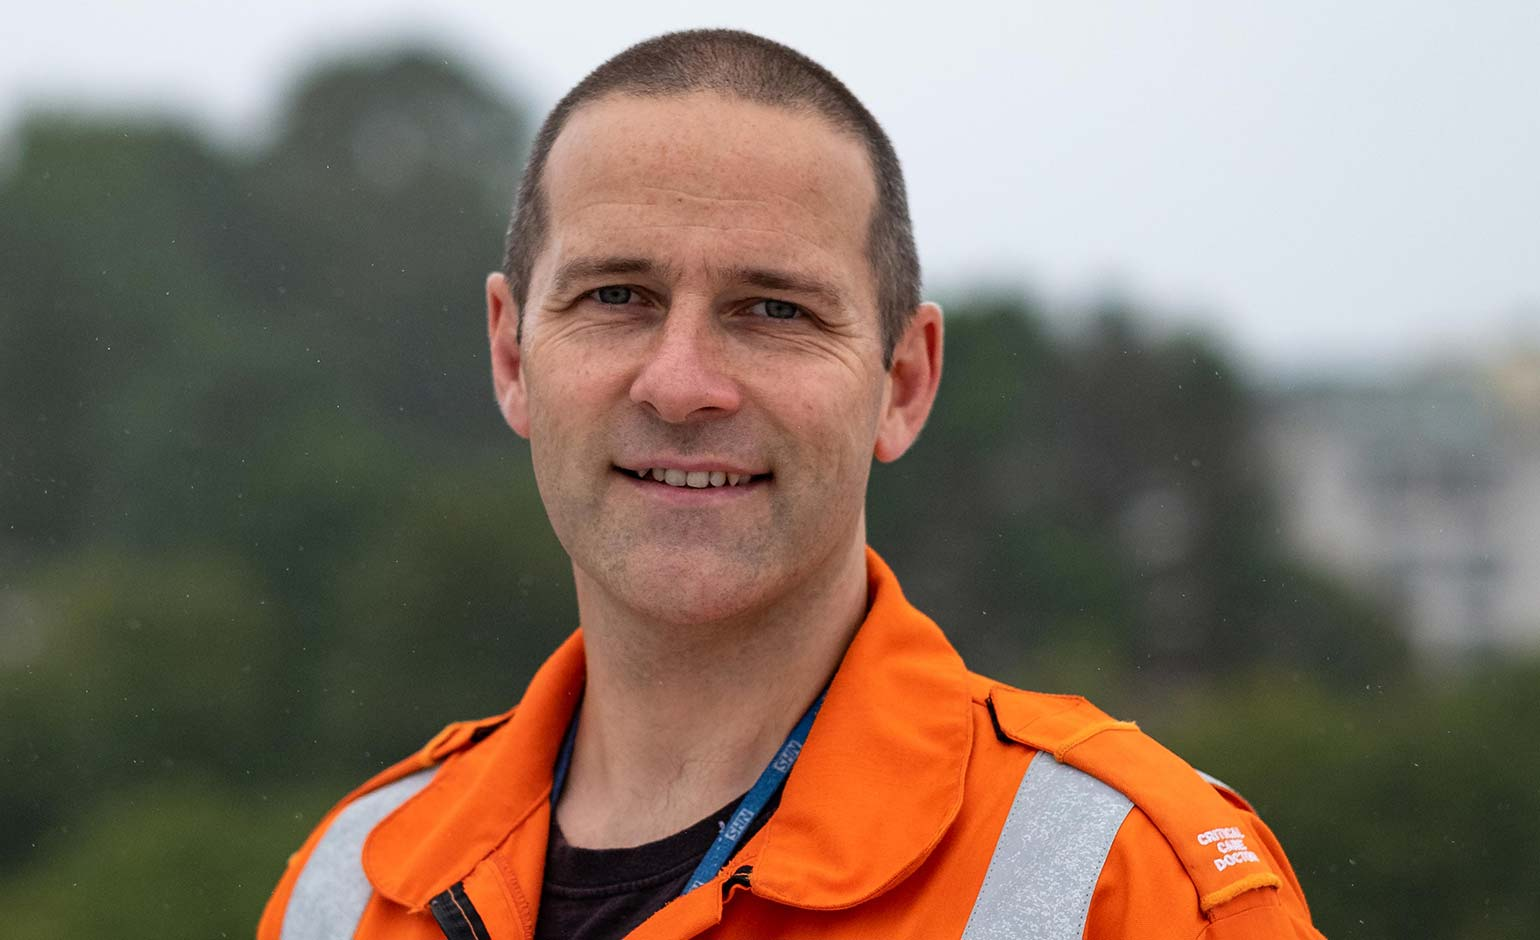 GWAAC Critical Care Doctor shortlisted in Air Ambulance Awards 2018